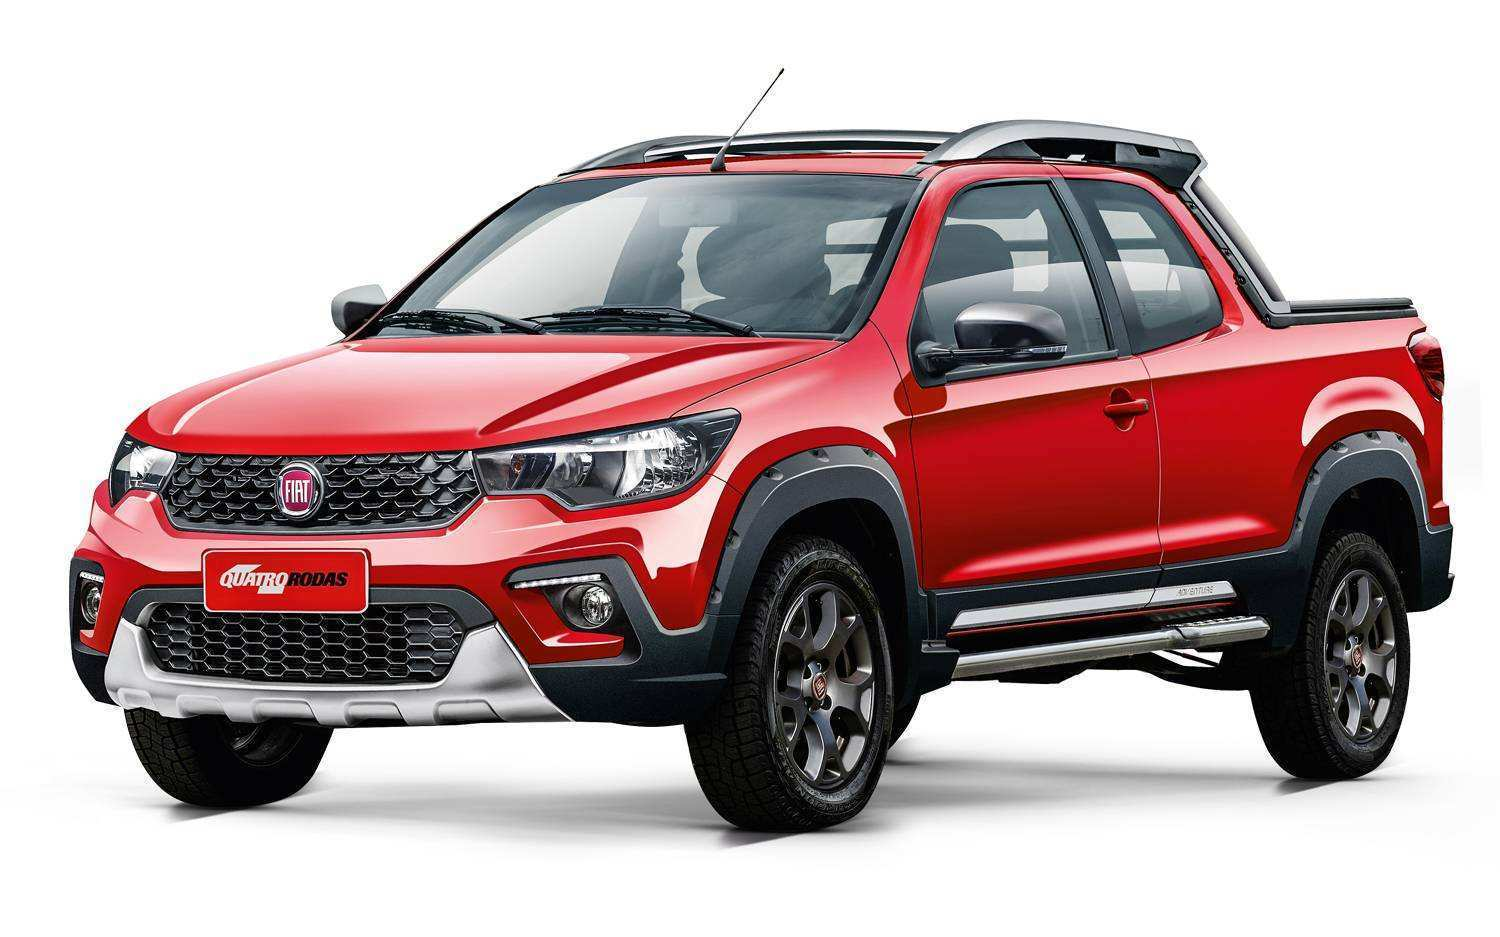 66 Great Fiat Strada 2019 Price with Fiat Strada 2019